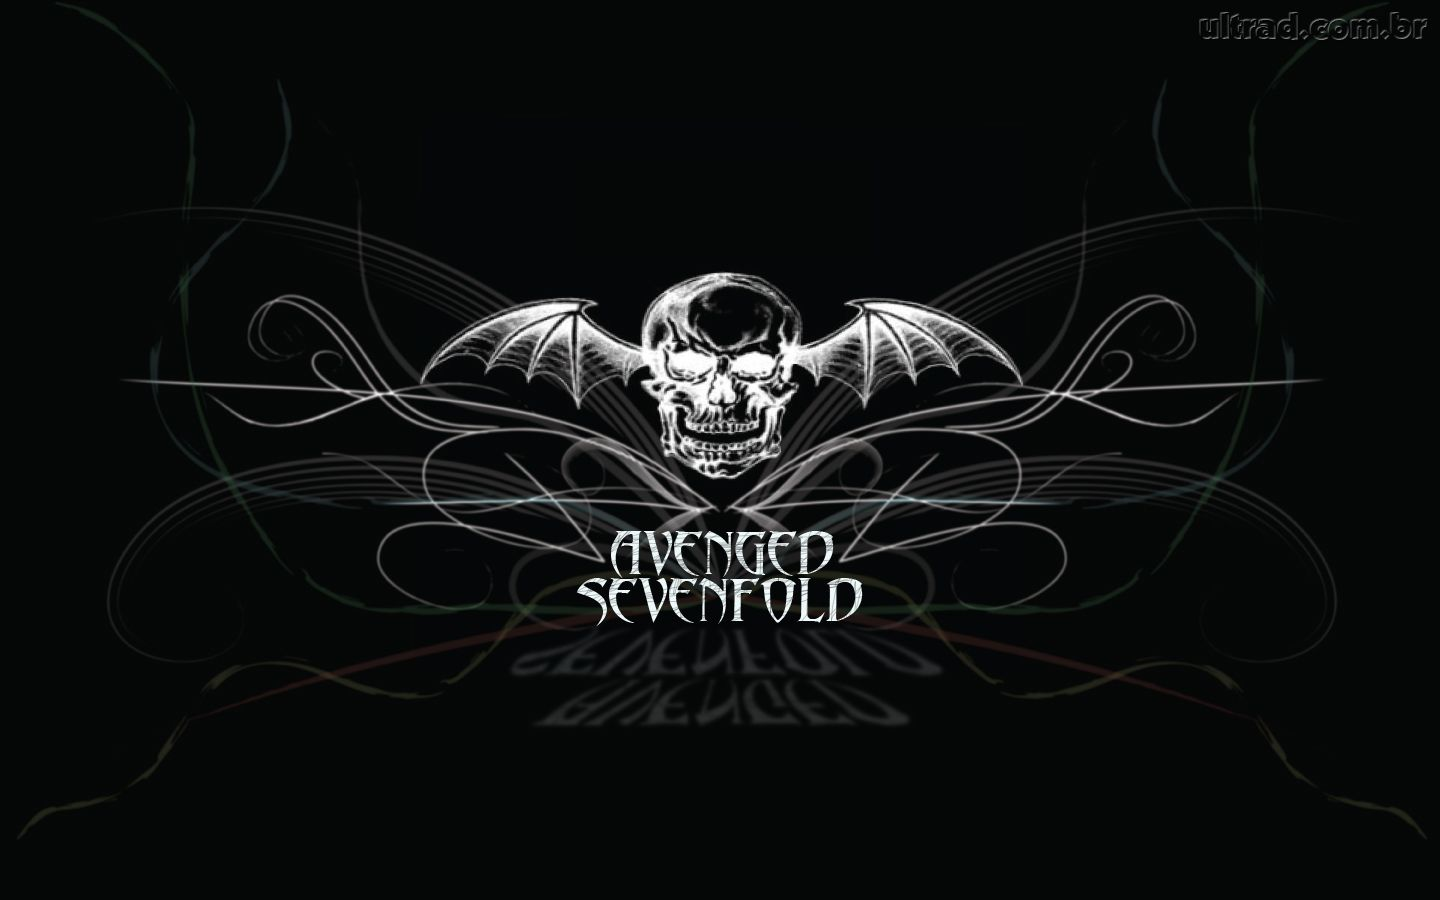 on photo to open full HD wallpaper Avenged sevenfold HD Wallpaper 1440x900